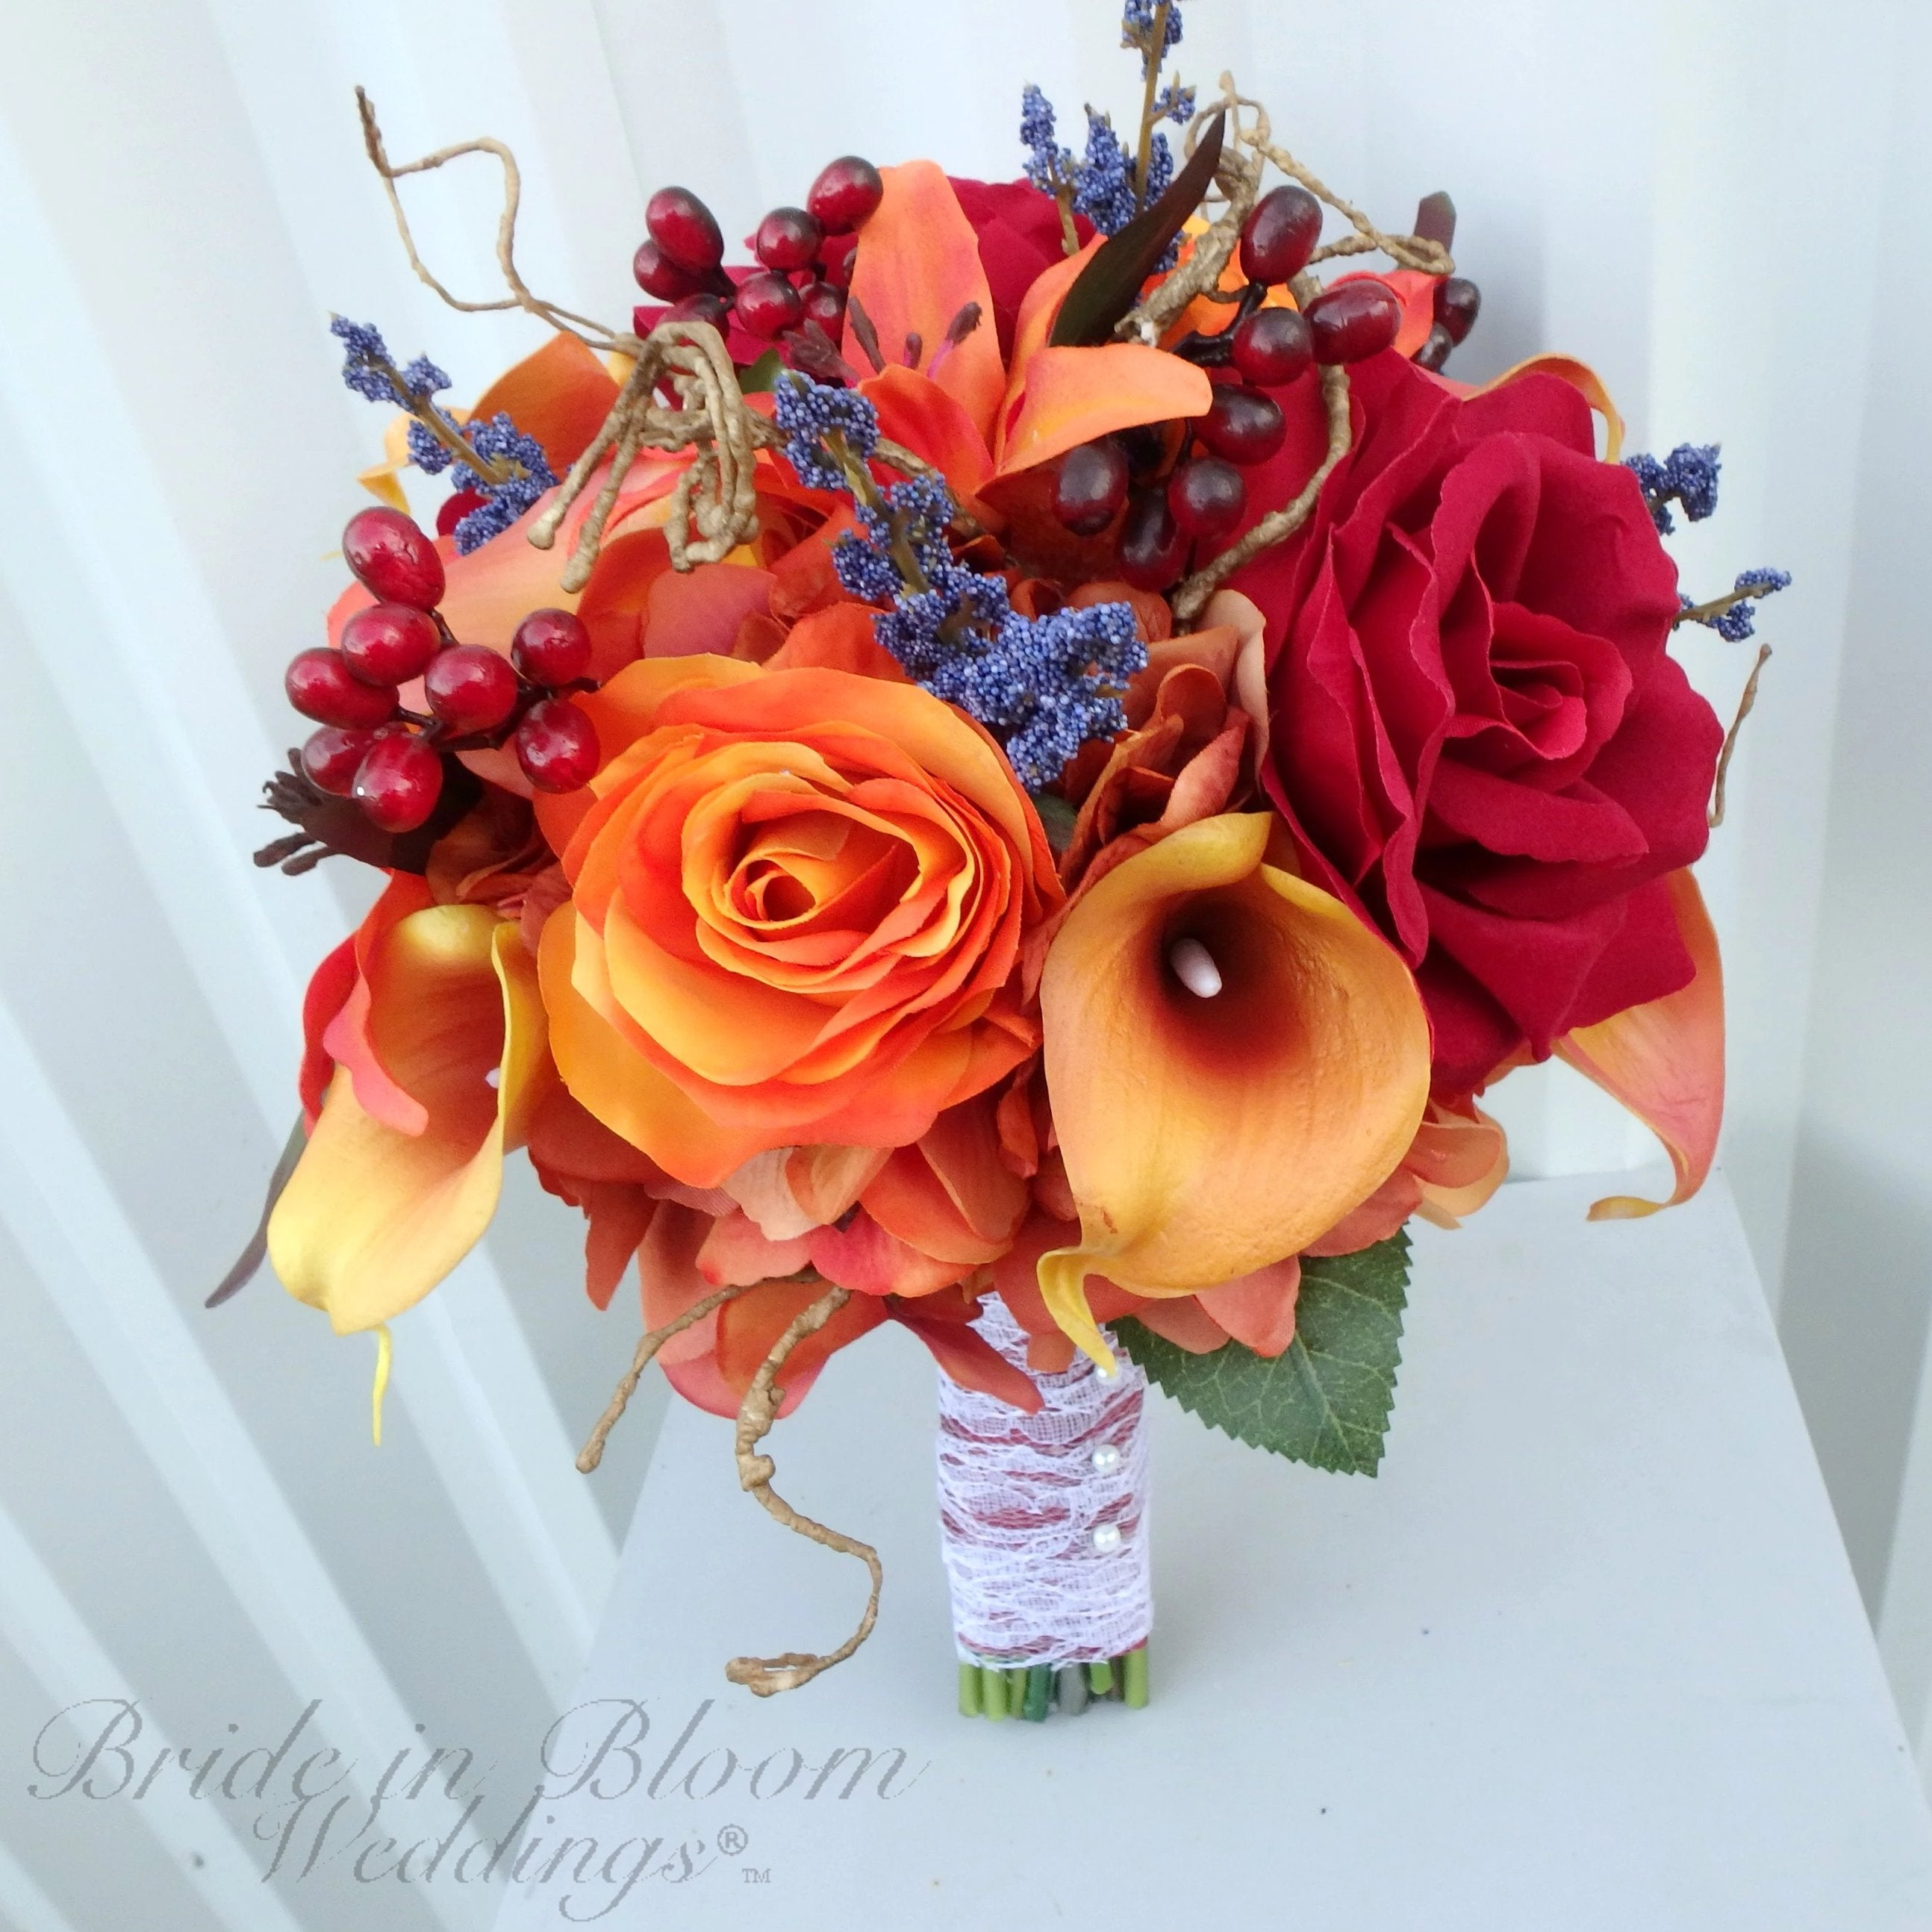 Fall wedding bouquet - Autumn wedding flowers